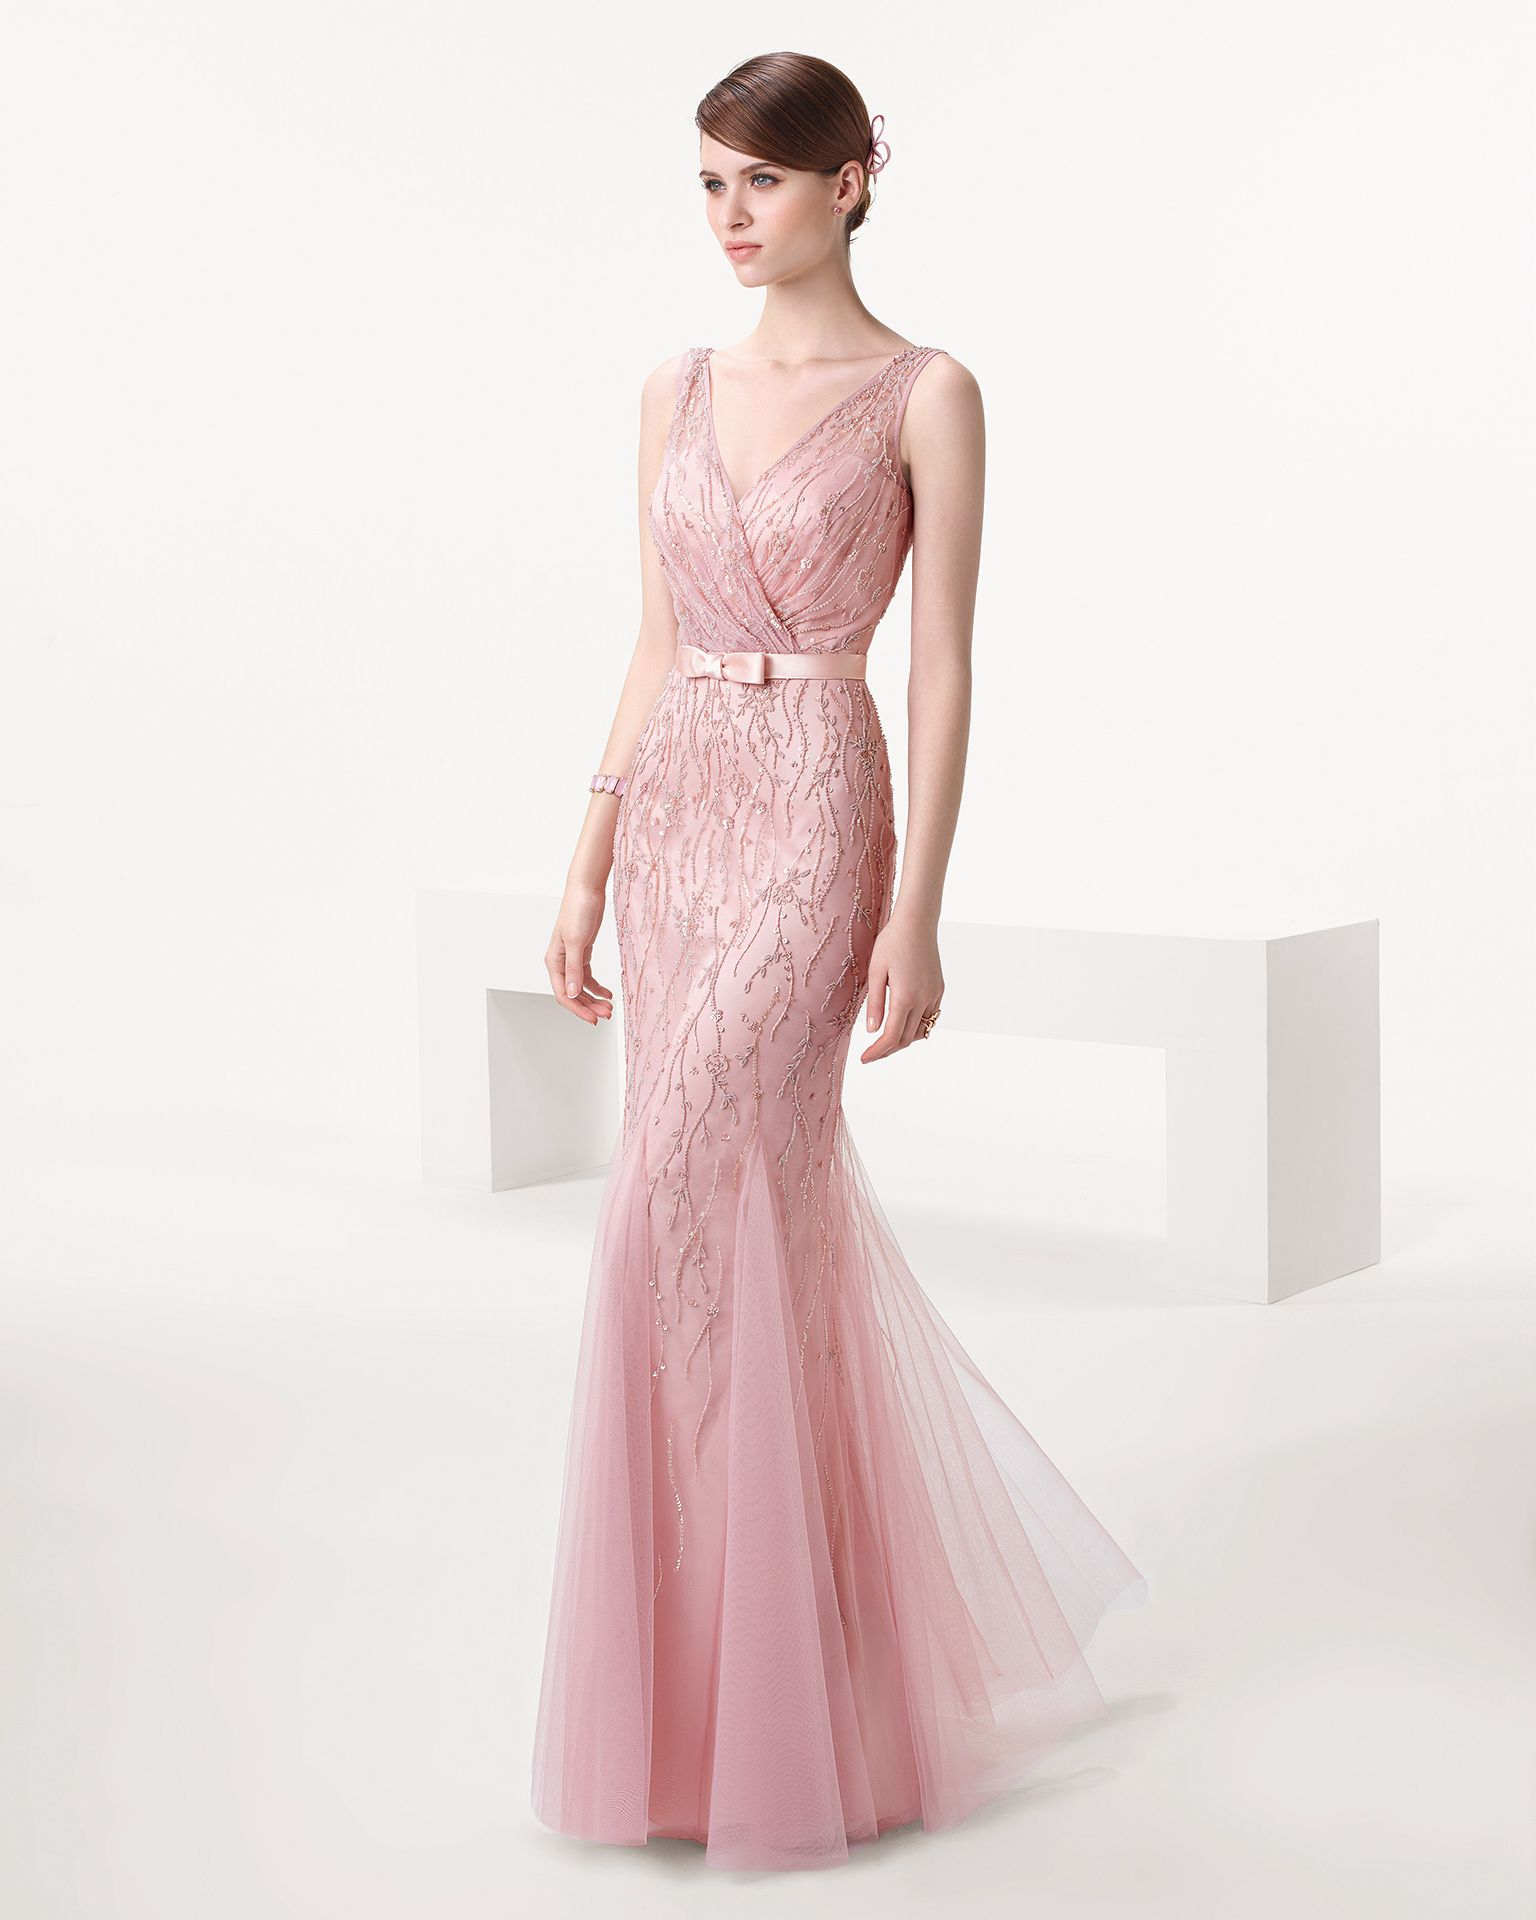 Blush beaded wedding gown with belt // Rose Quartz-hued wedding ...